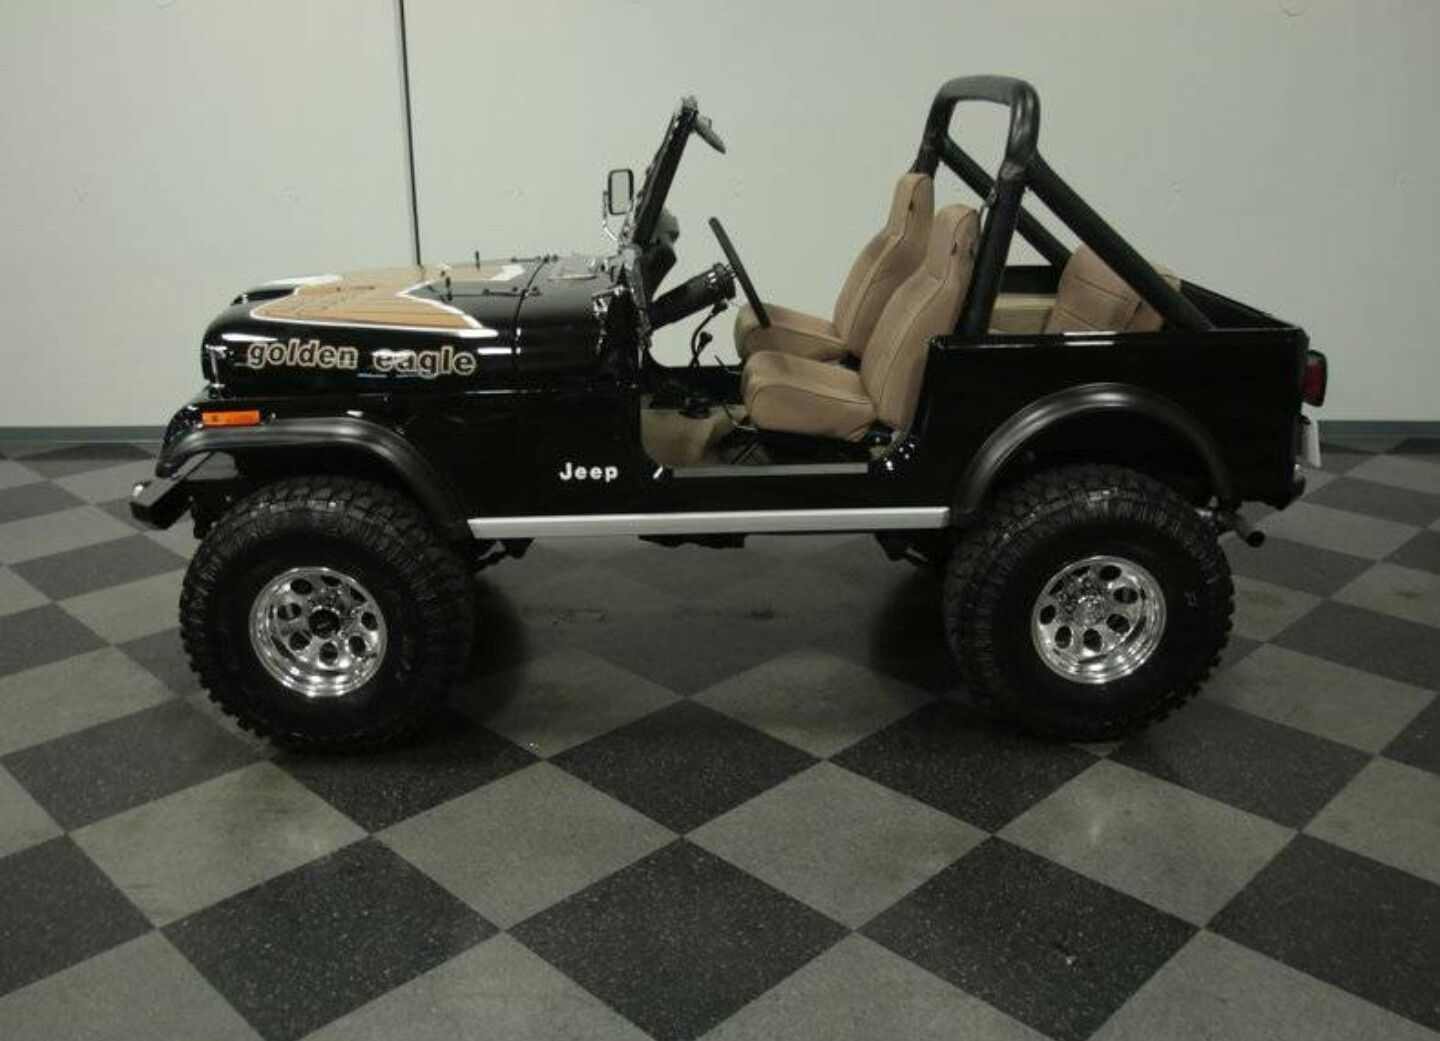 1985 Jeep Cj7 Golden Eagle Jeep Cj7 Jeep Cj Jeep Cj7 Mods